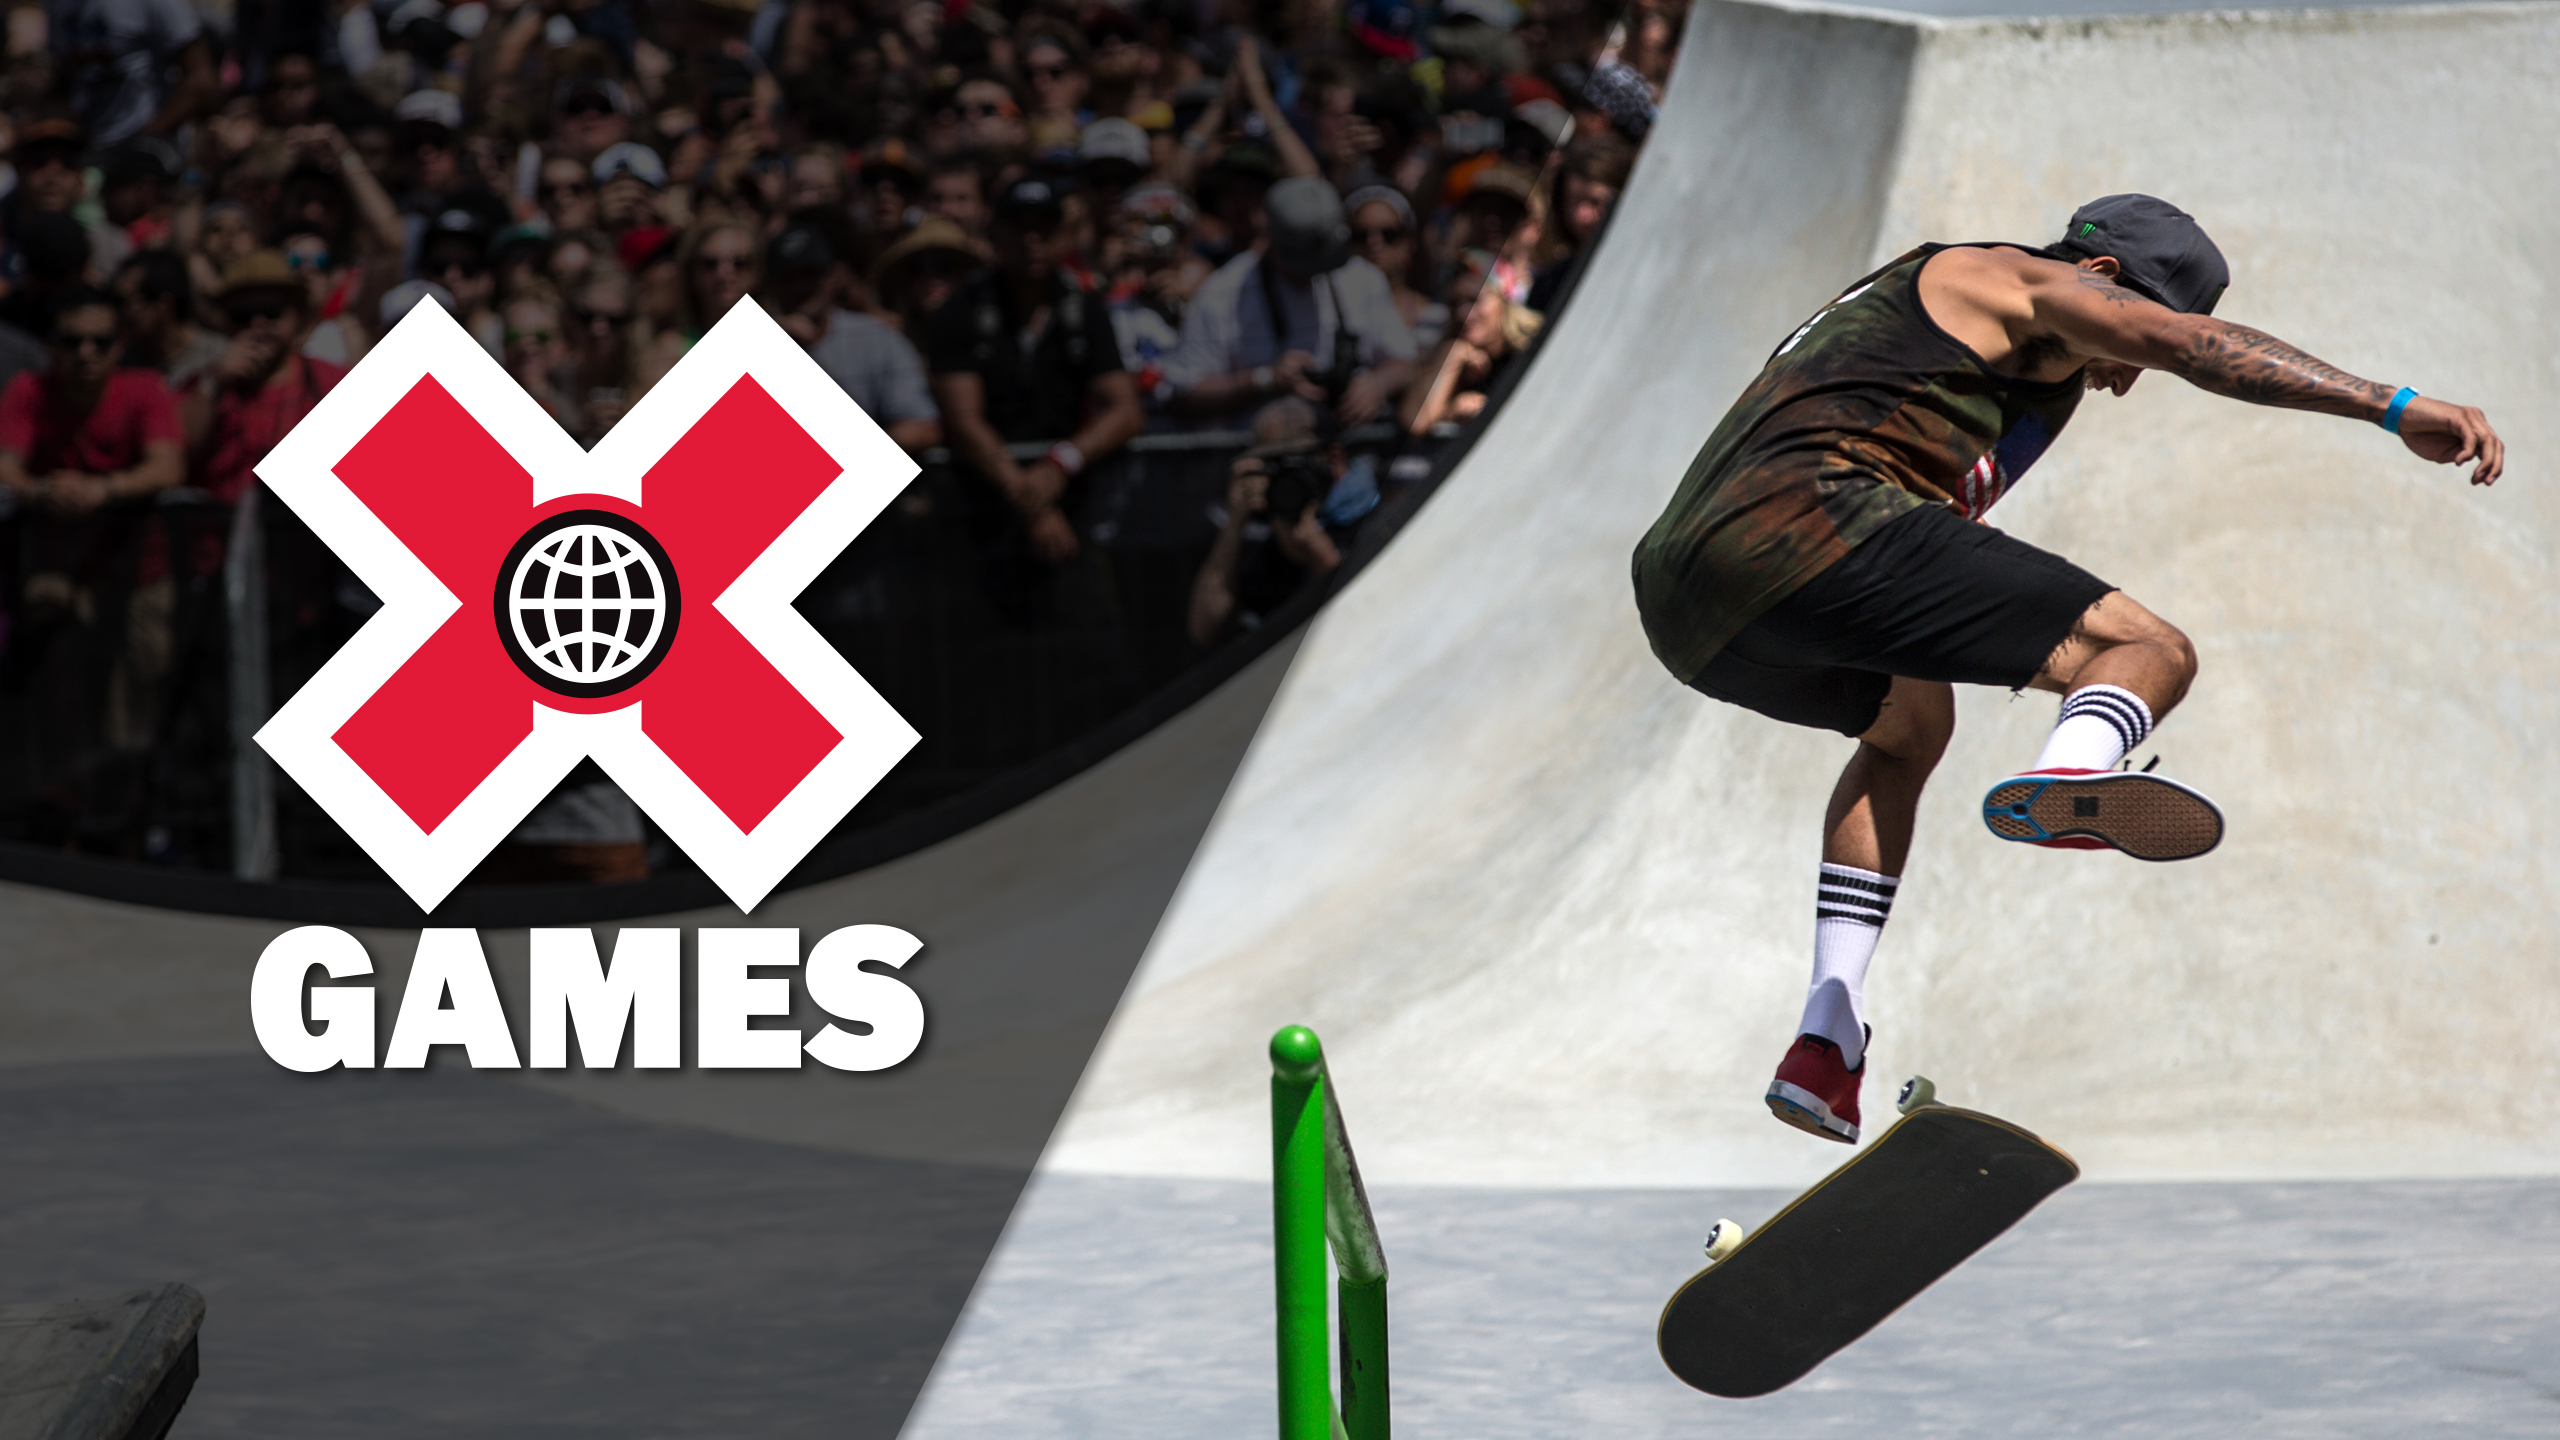 World of X Games: Stab High Air Presented by Monster Energy